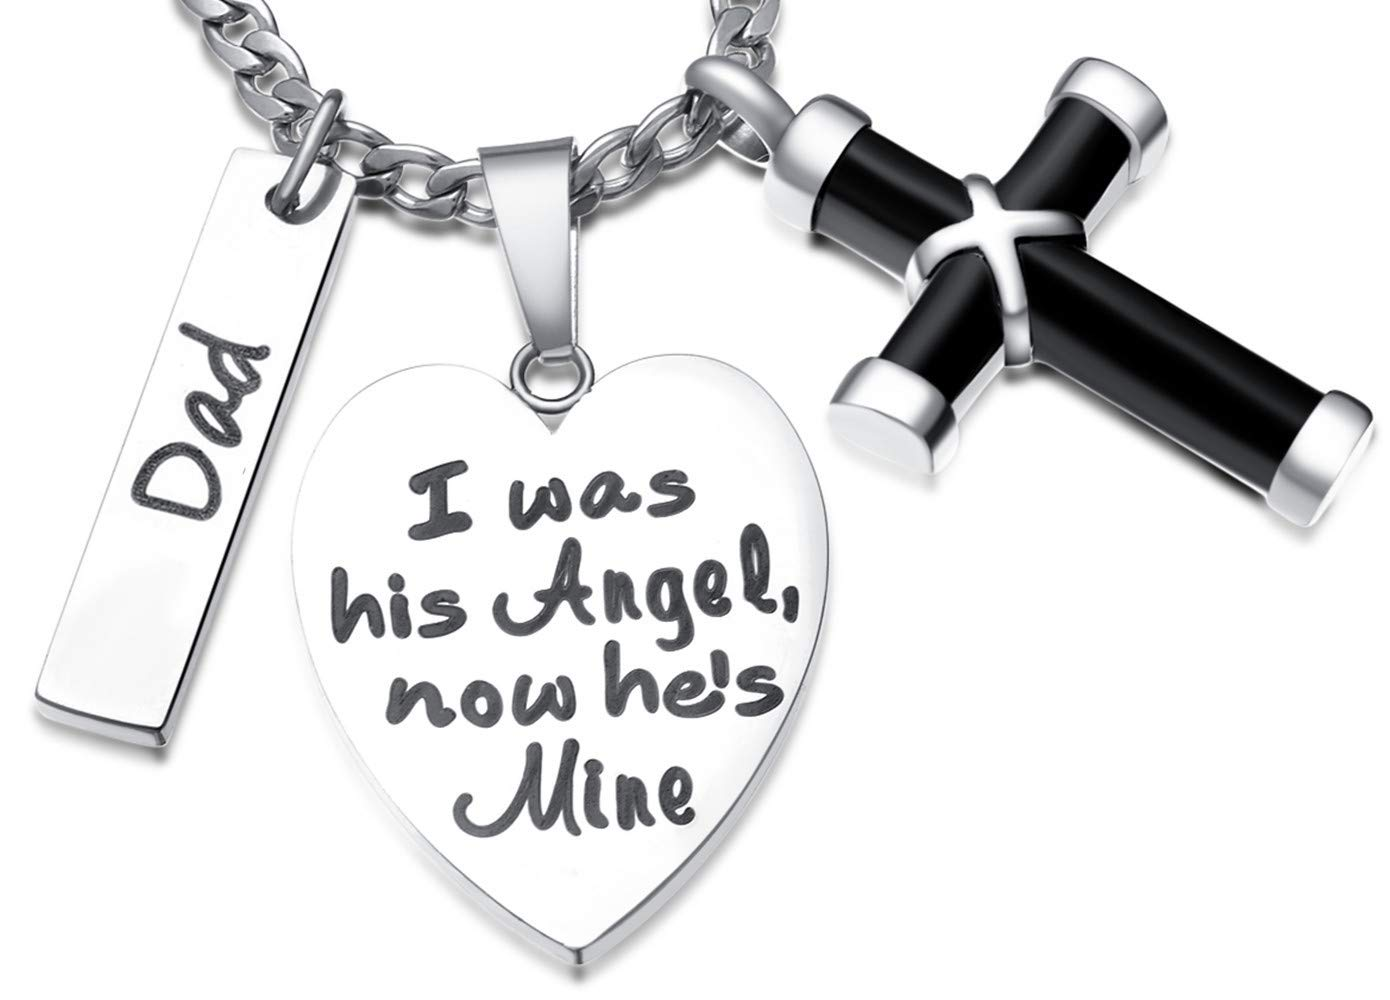 Love Memory Cross Urn Necklace Ashes Holder Keepsake for Dad Funeral Jewelry Pendants,I was His Angel, Now He's Mine.